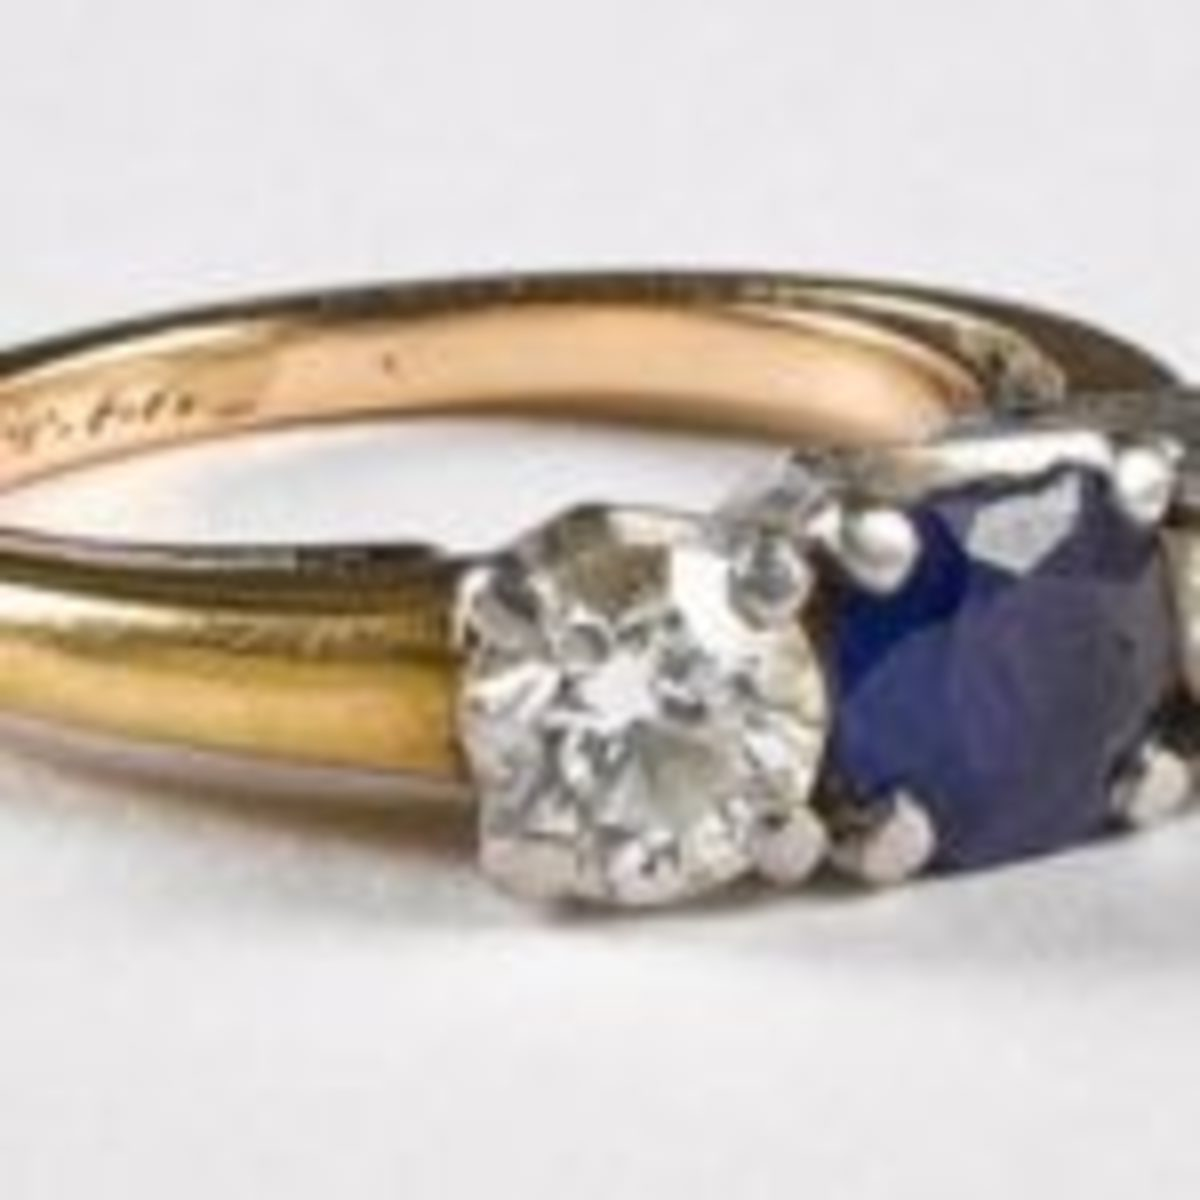 14K gold, diamond and sapphire ring. ($240-$280)